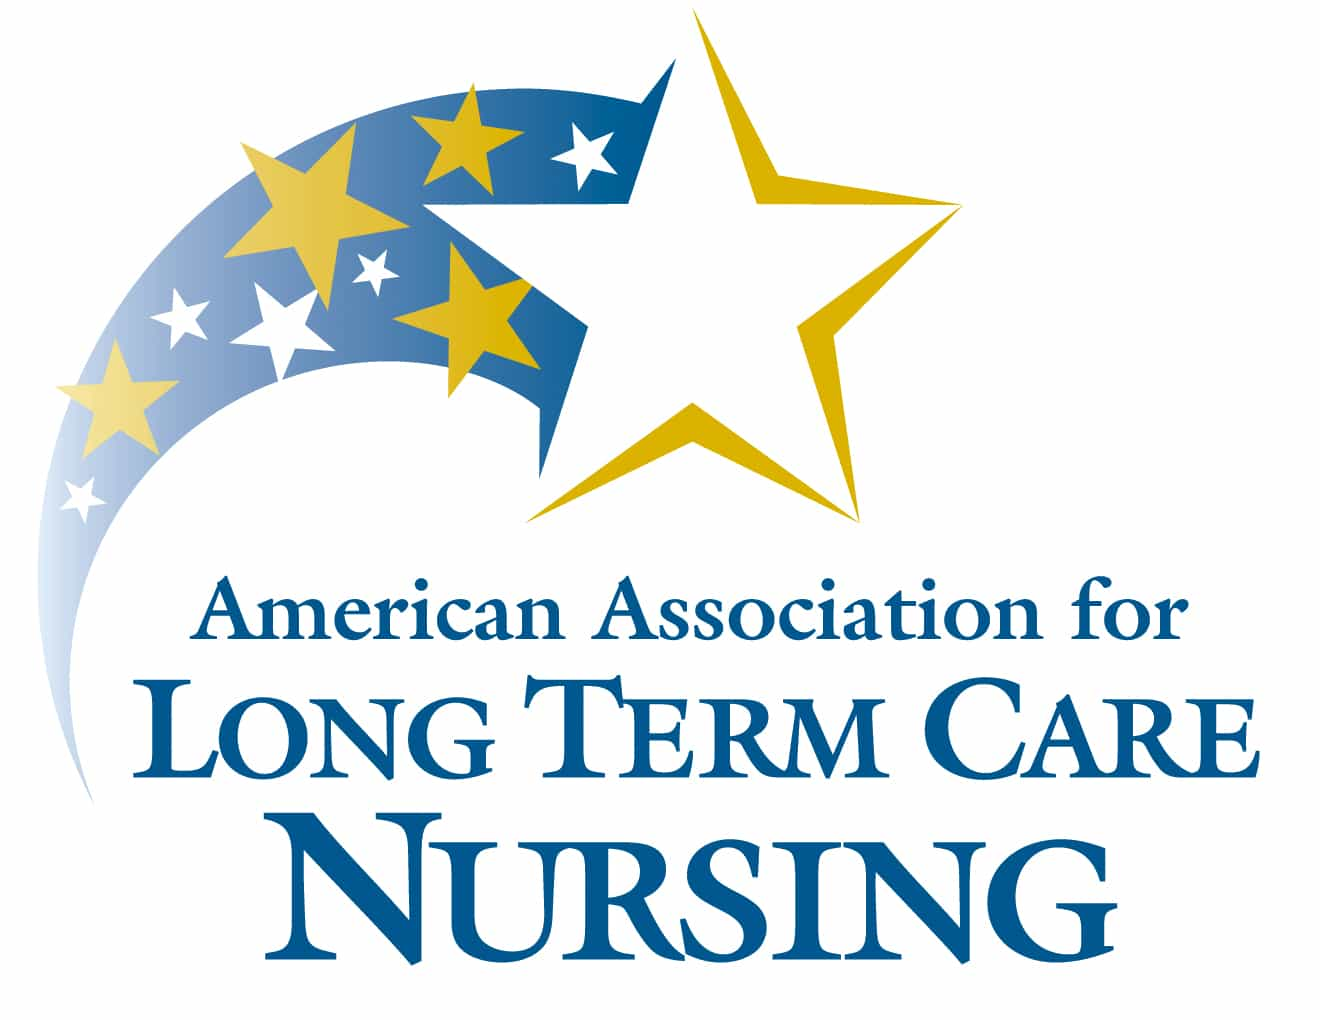 American Association for Lone Term Care Nursing